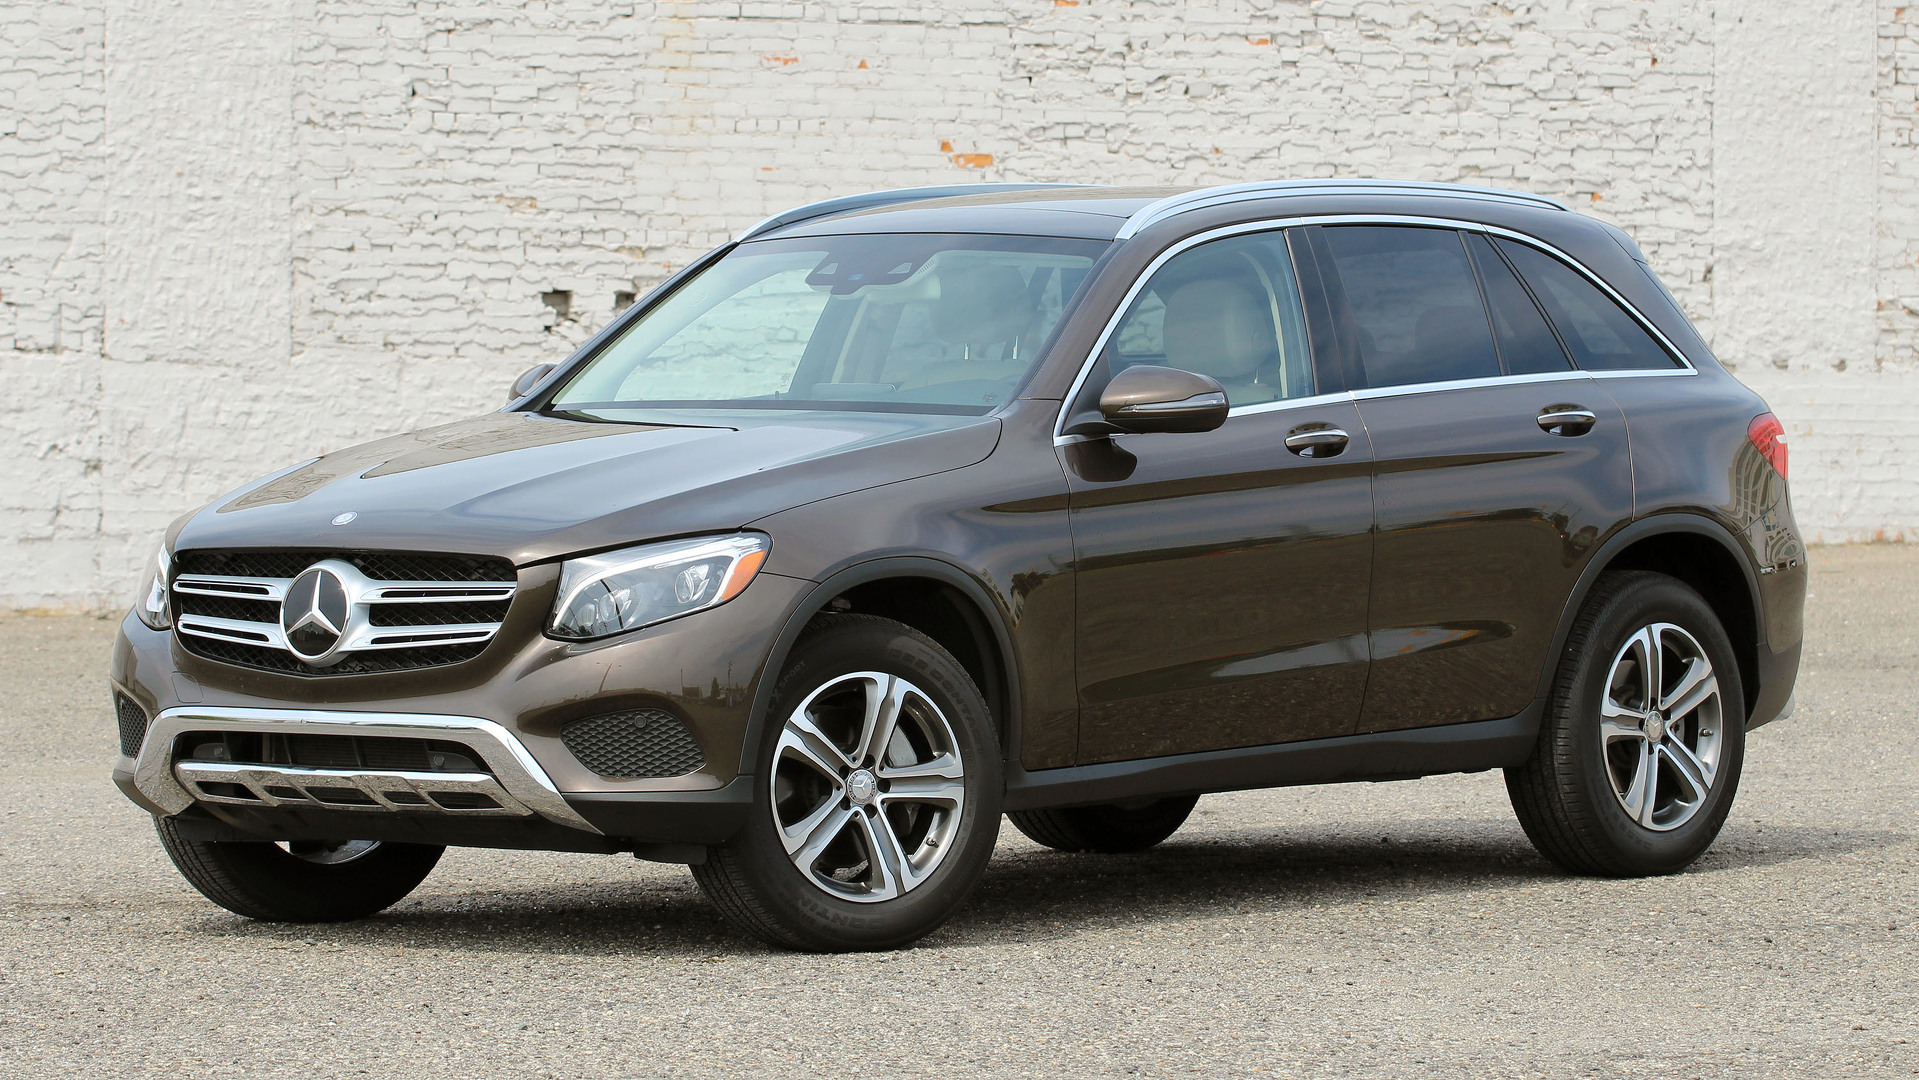 Review 2016 mercedes benz glc300 4matic for 2016 mercedes benz c300 4matic